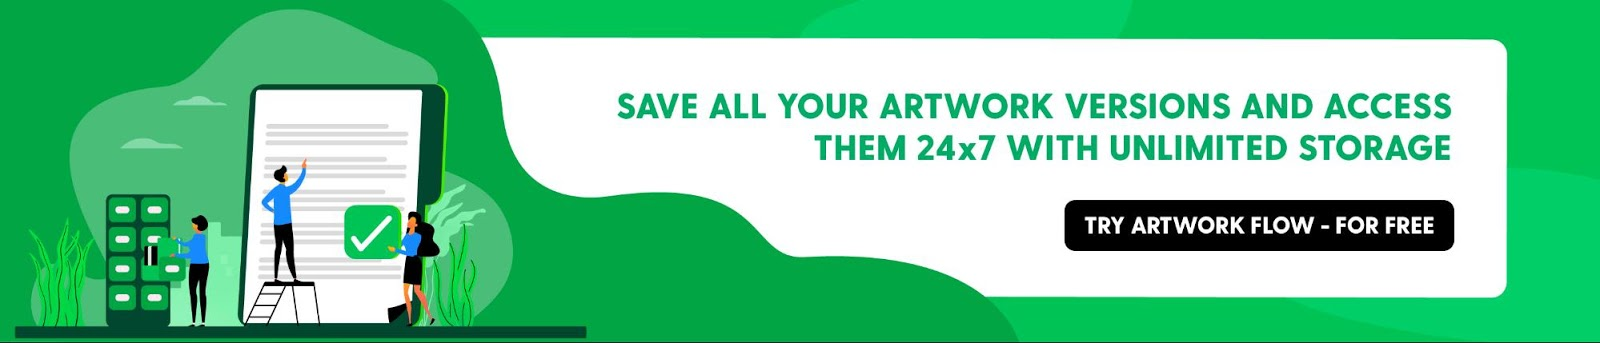 Save All Your Artwork Versions and Access them 24x7 with Unlimited StorageTry Artwork Flow - for FREEhttps://bizongo.com/artwork-flow